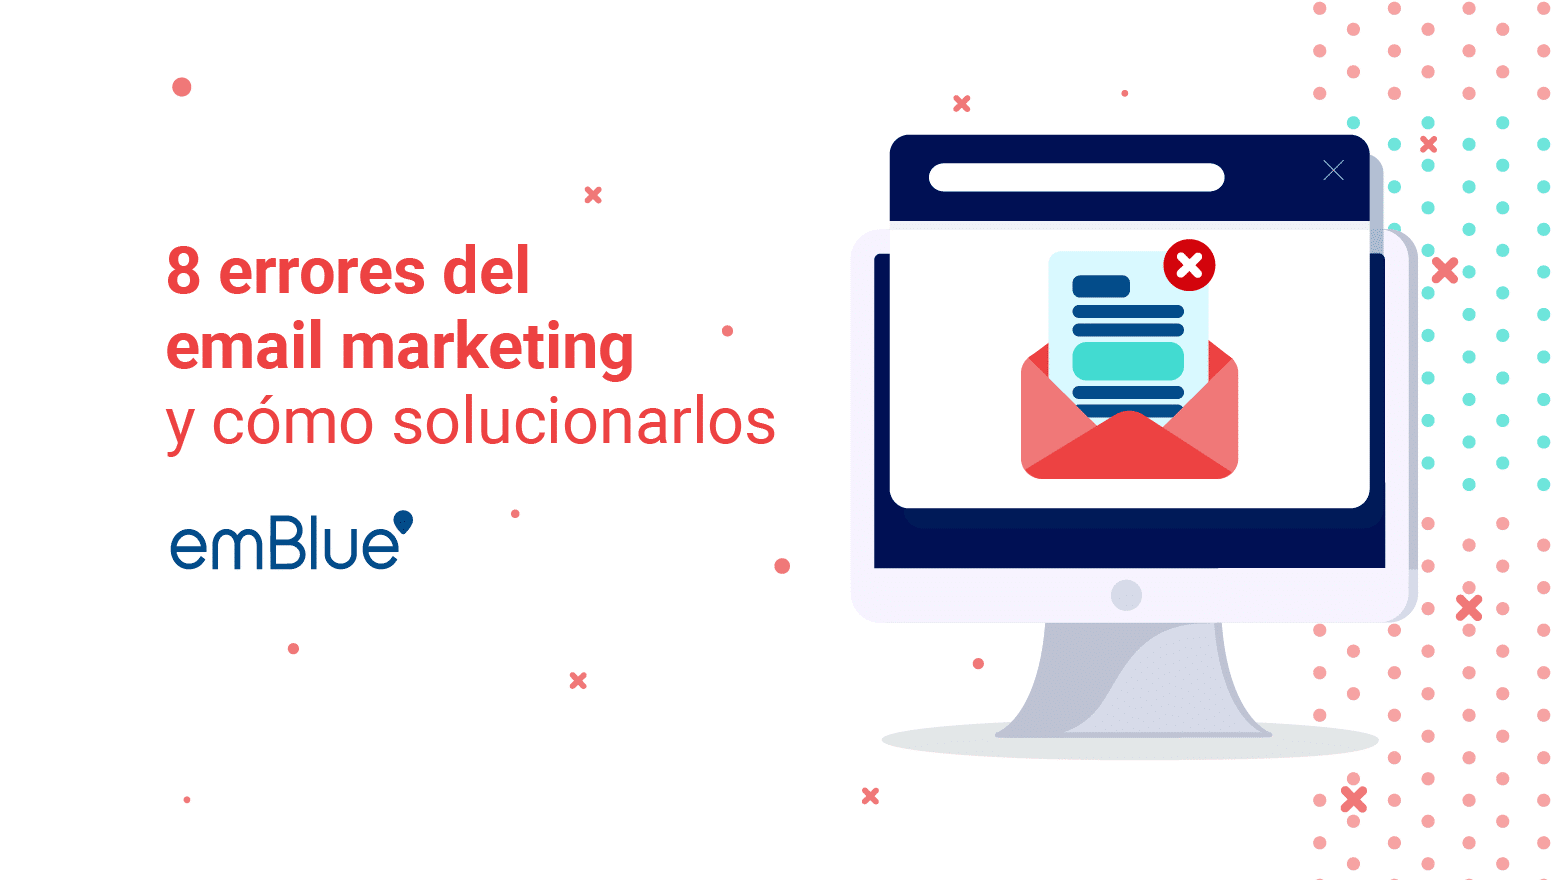 8 errores del email marketing y cómo solucionarlos